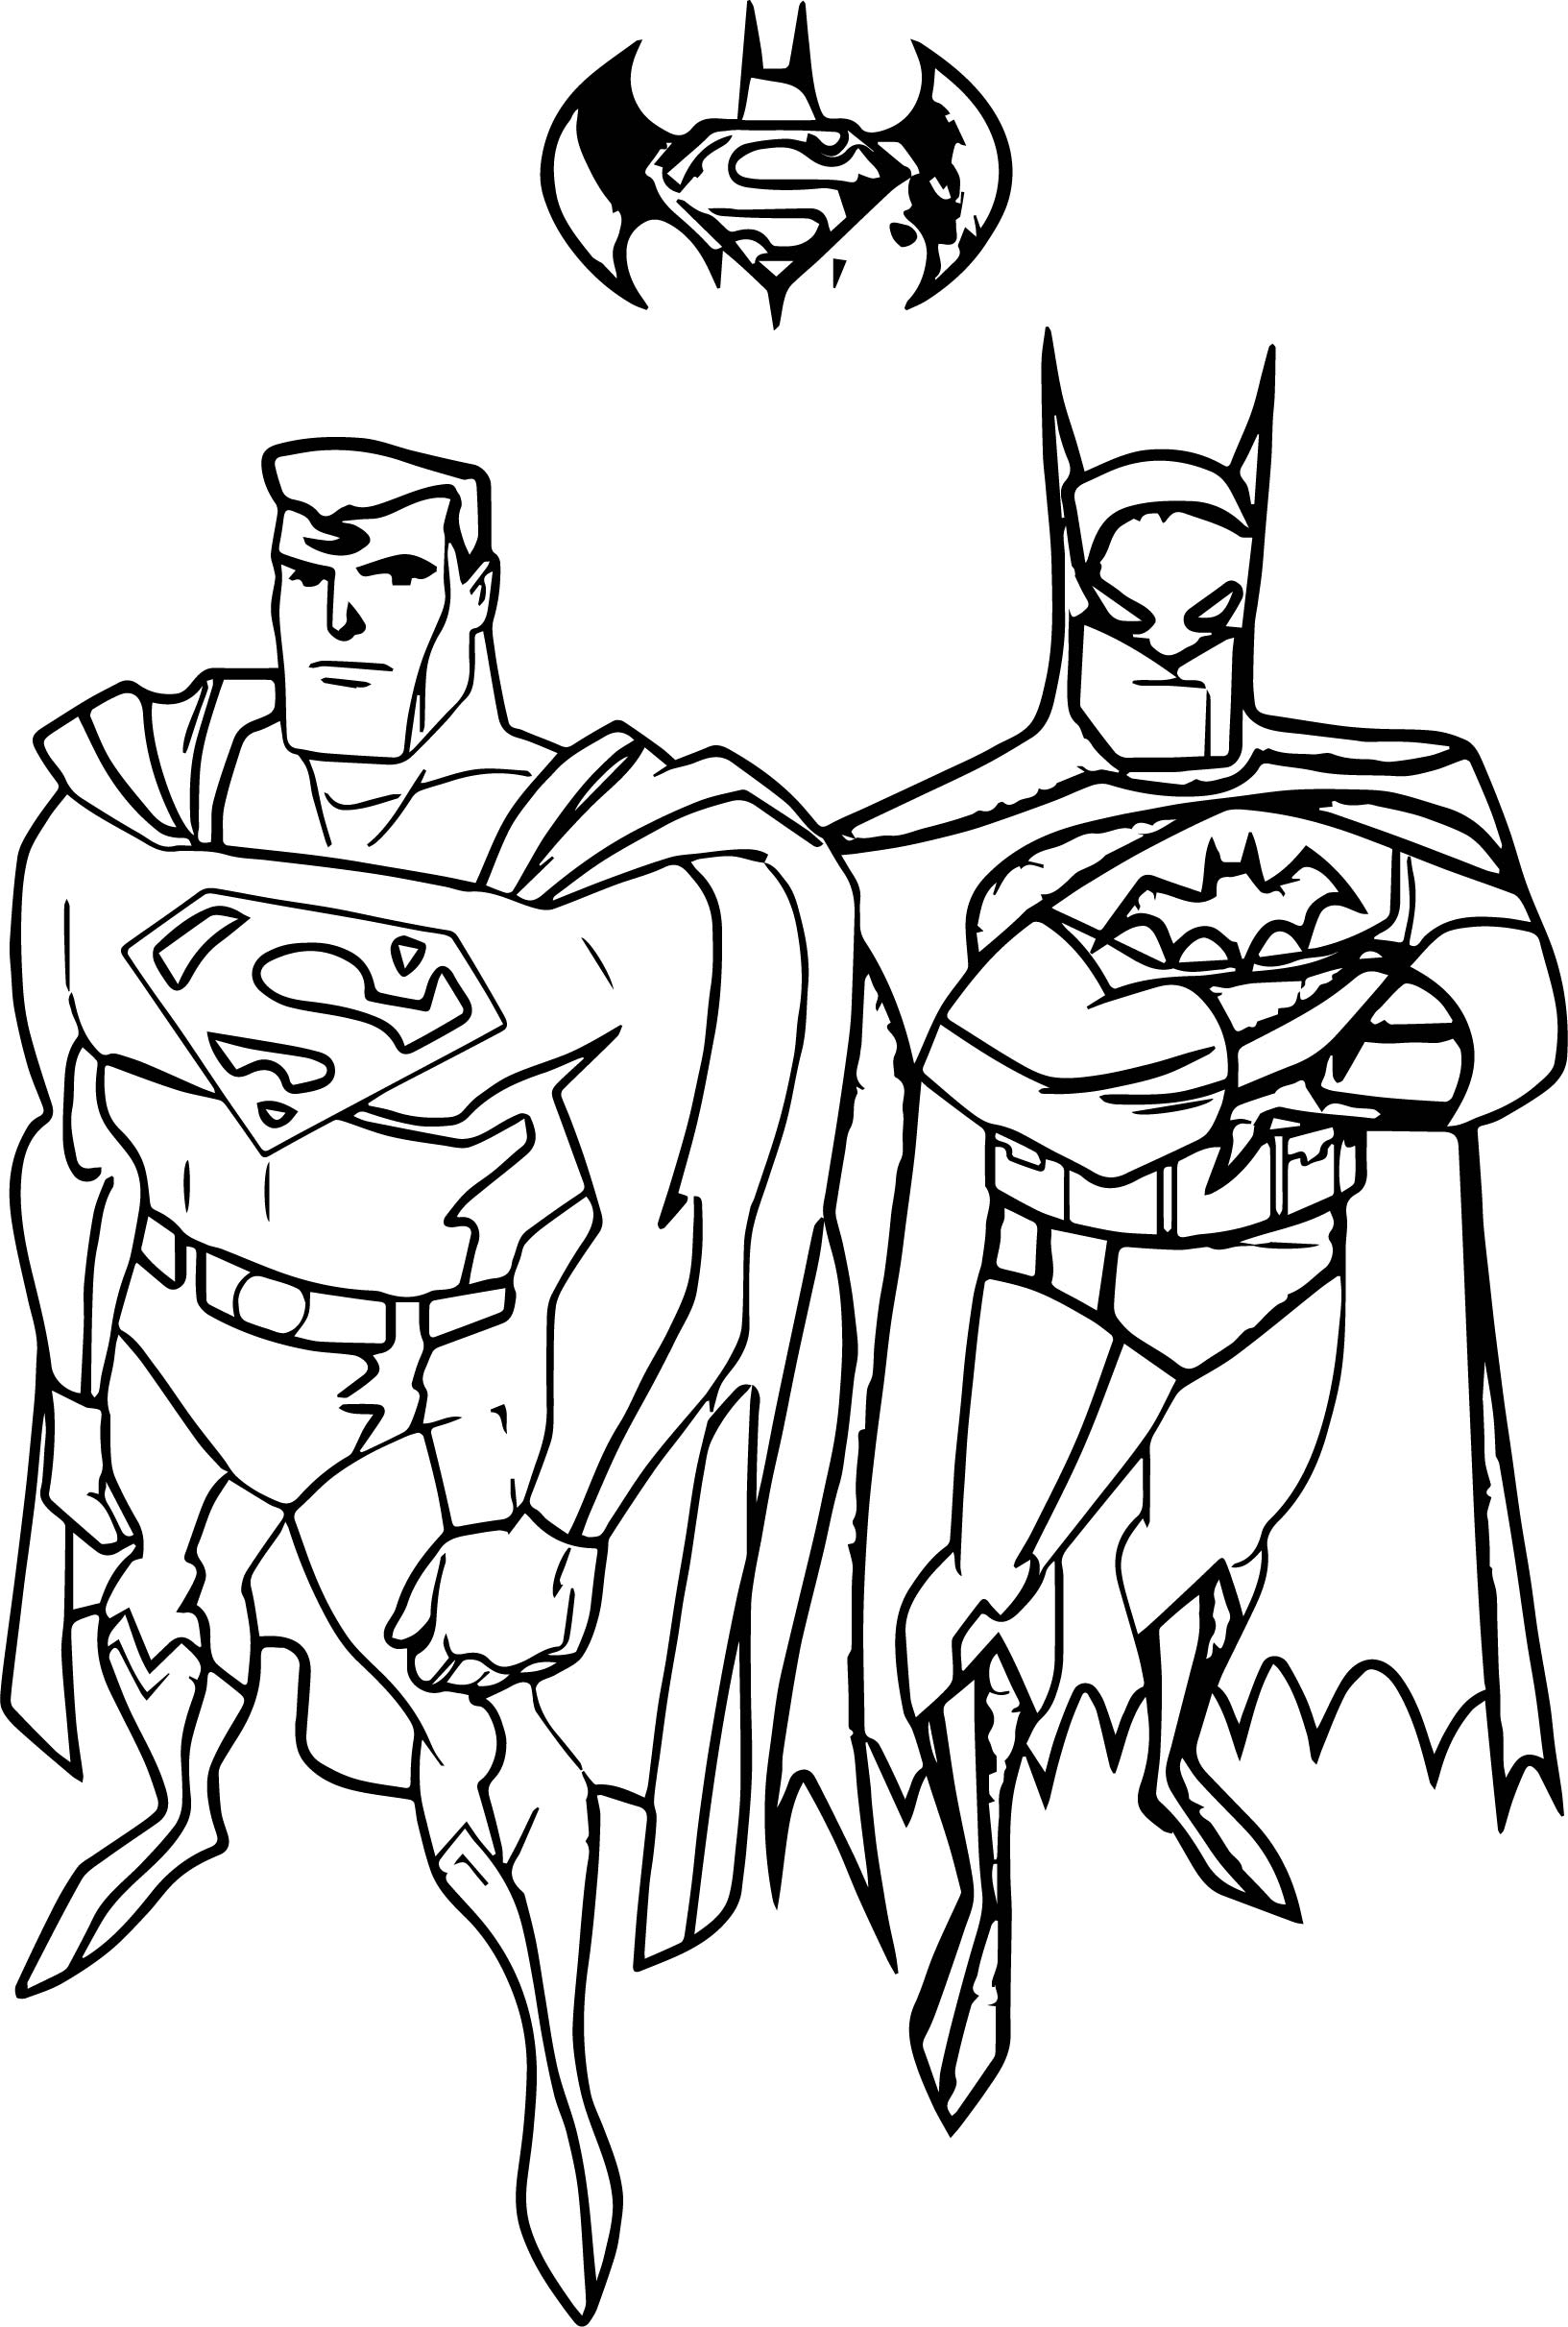 1633x2423 Superman Vs Batman Coloring Pages Collection Coloring For Kids